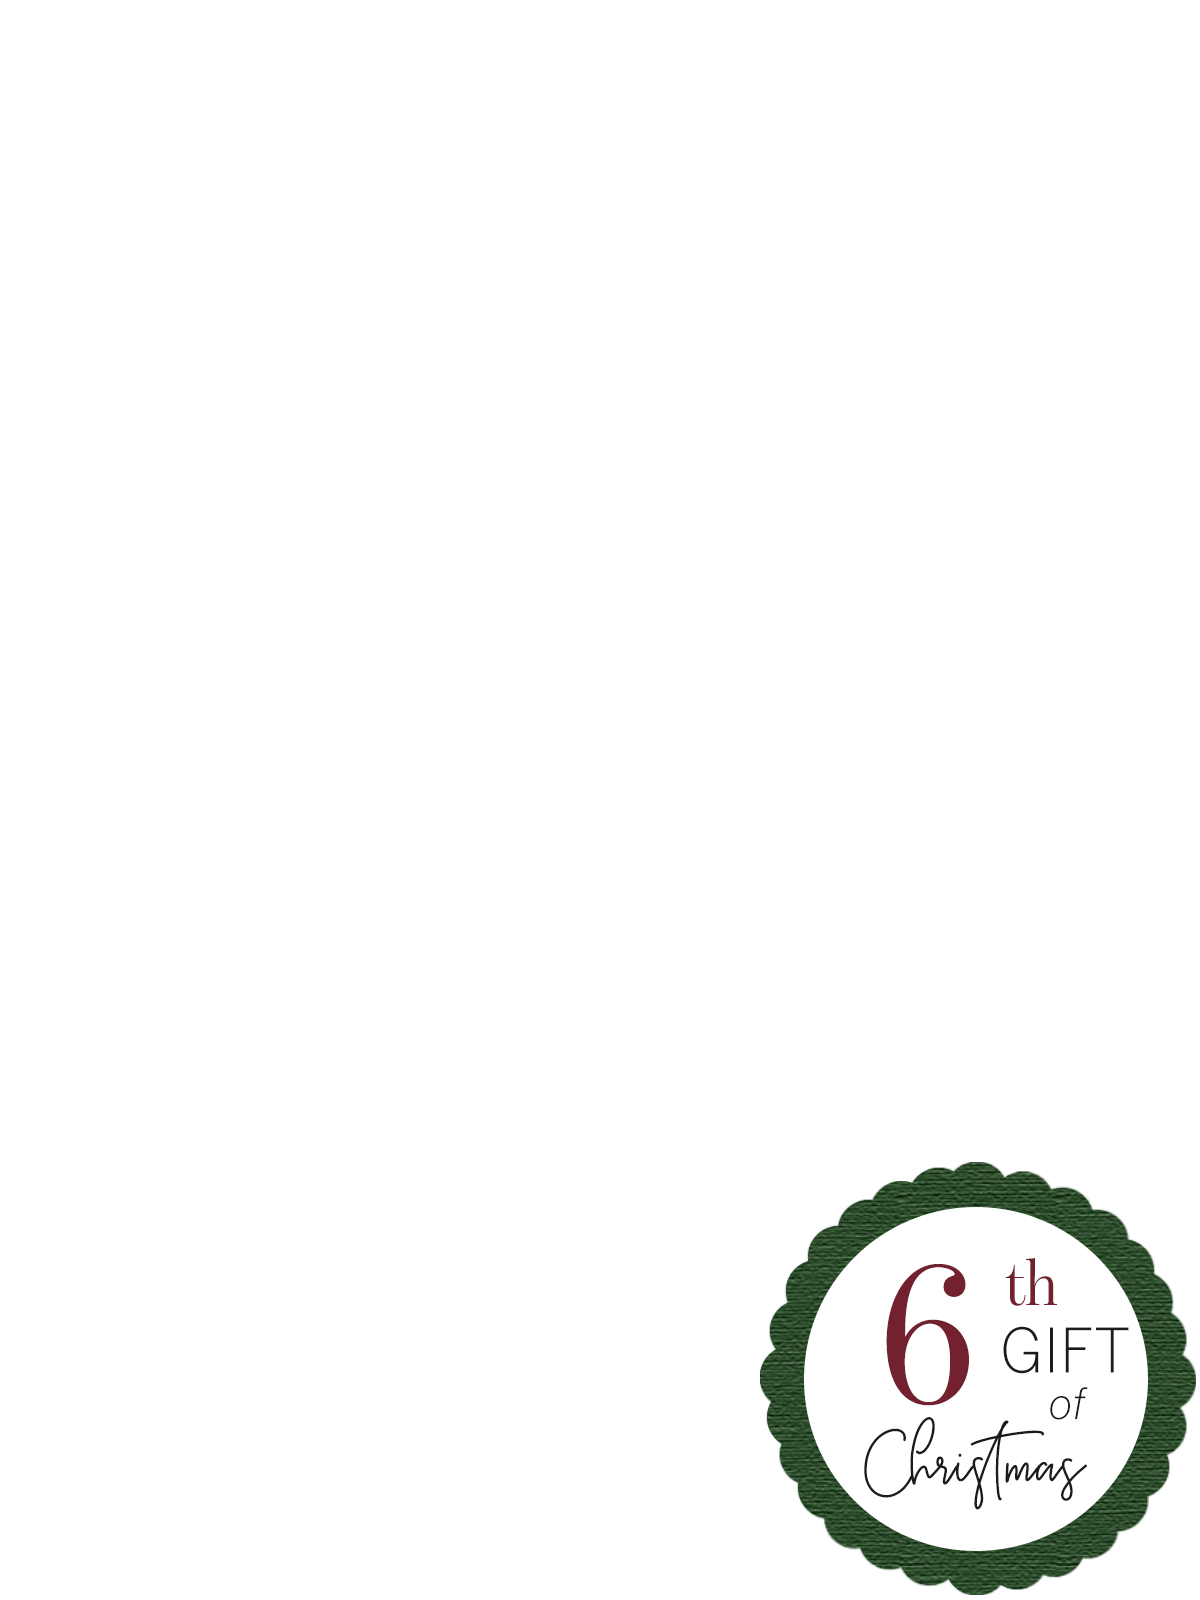 12GiftsOfChristmas_PromoFlags_6th.png